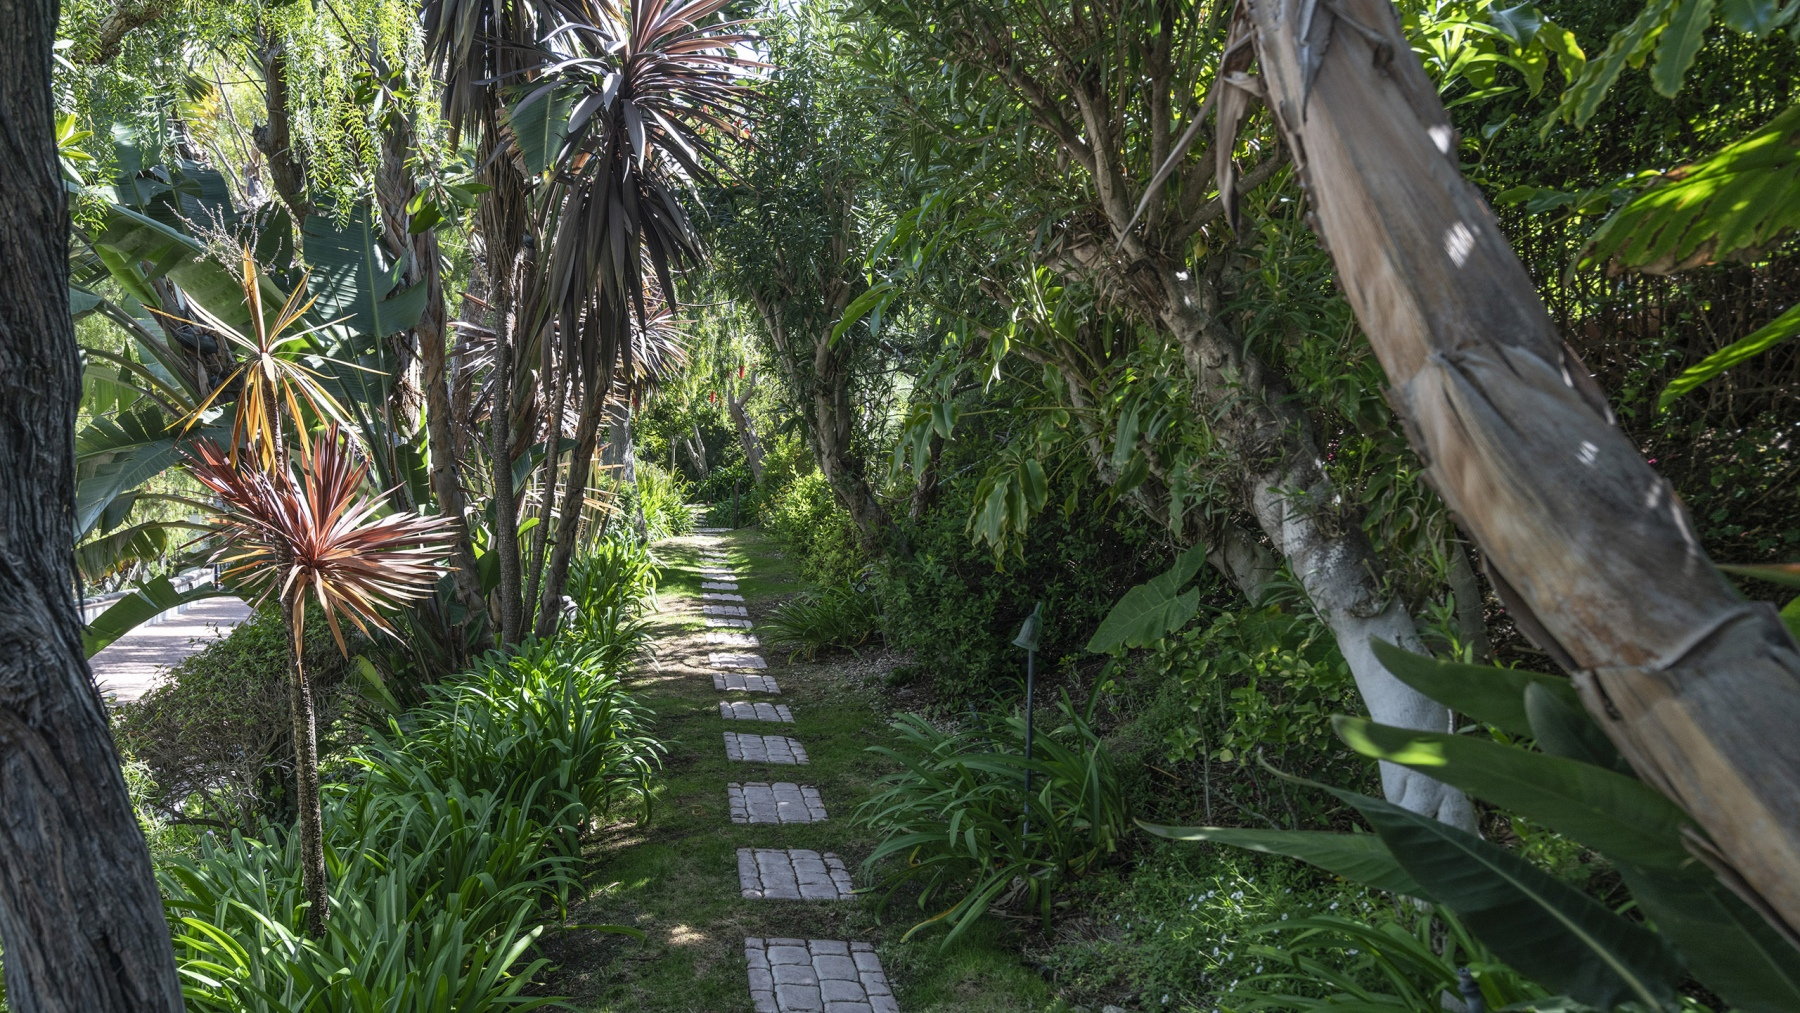 SECLUDED-WALKWAY-2560